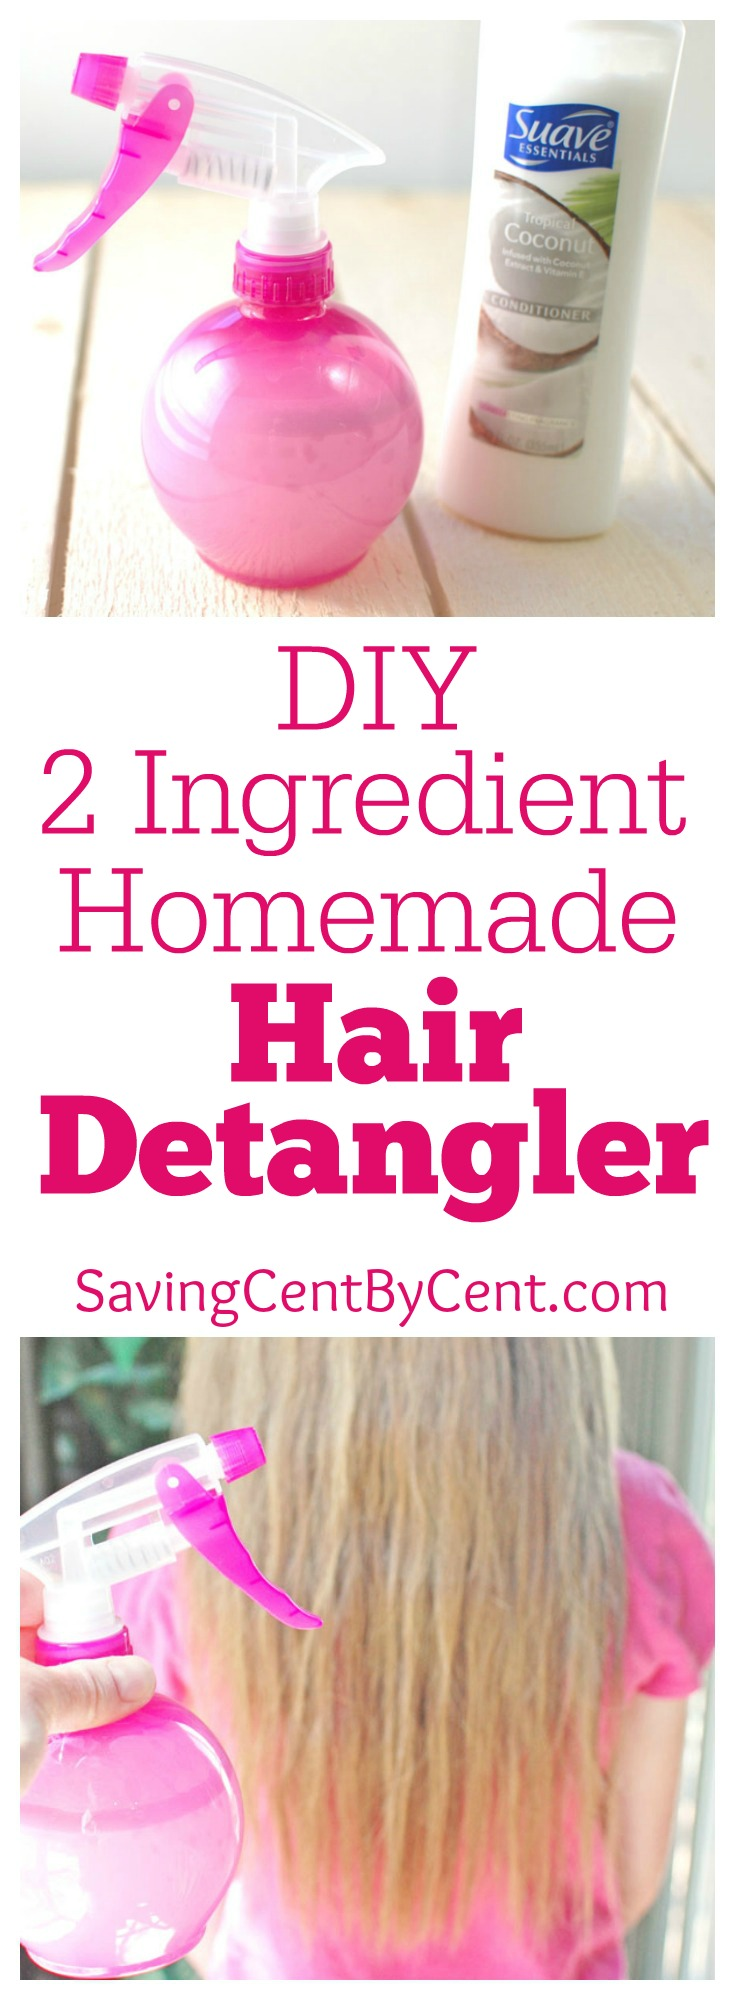 DIY 2 ingredient homemade hair detangler